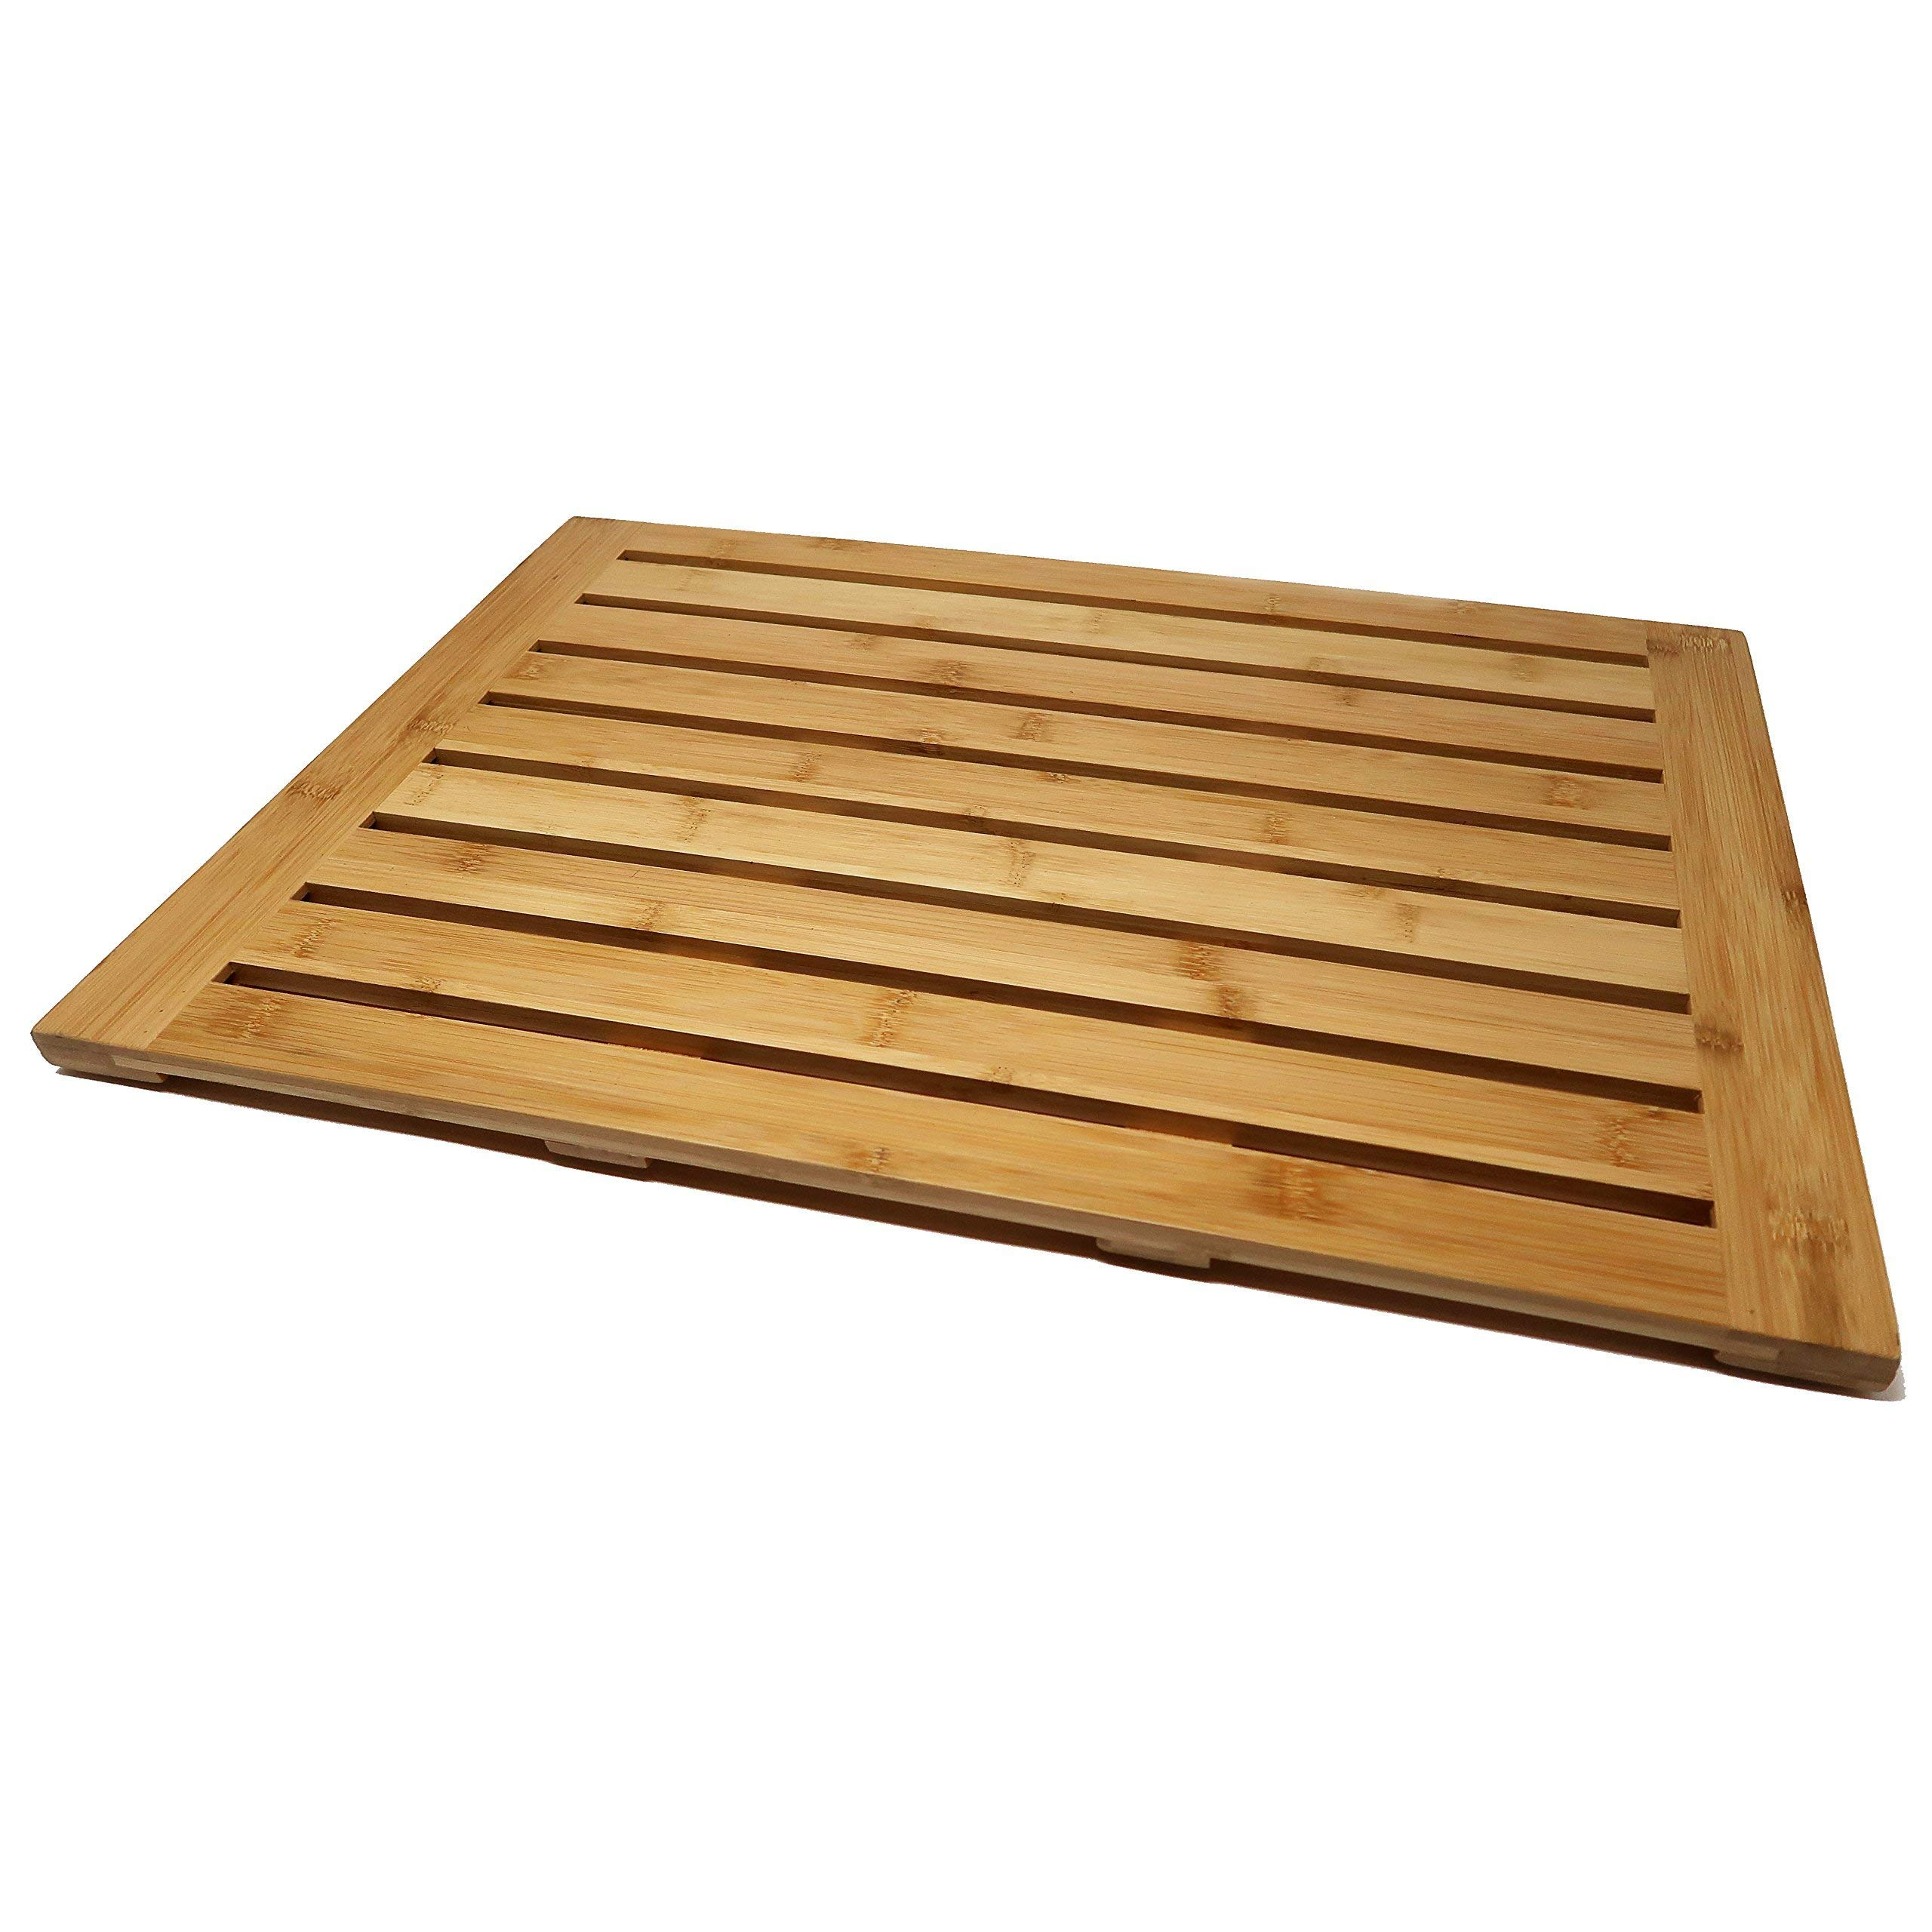 P3 & Company Bamboo Bath Shower Floor Mat for Home Sauna Spa